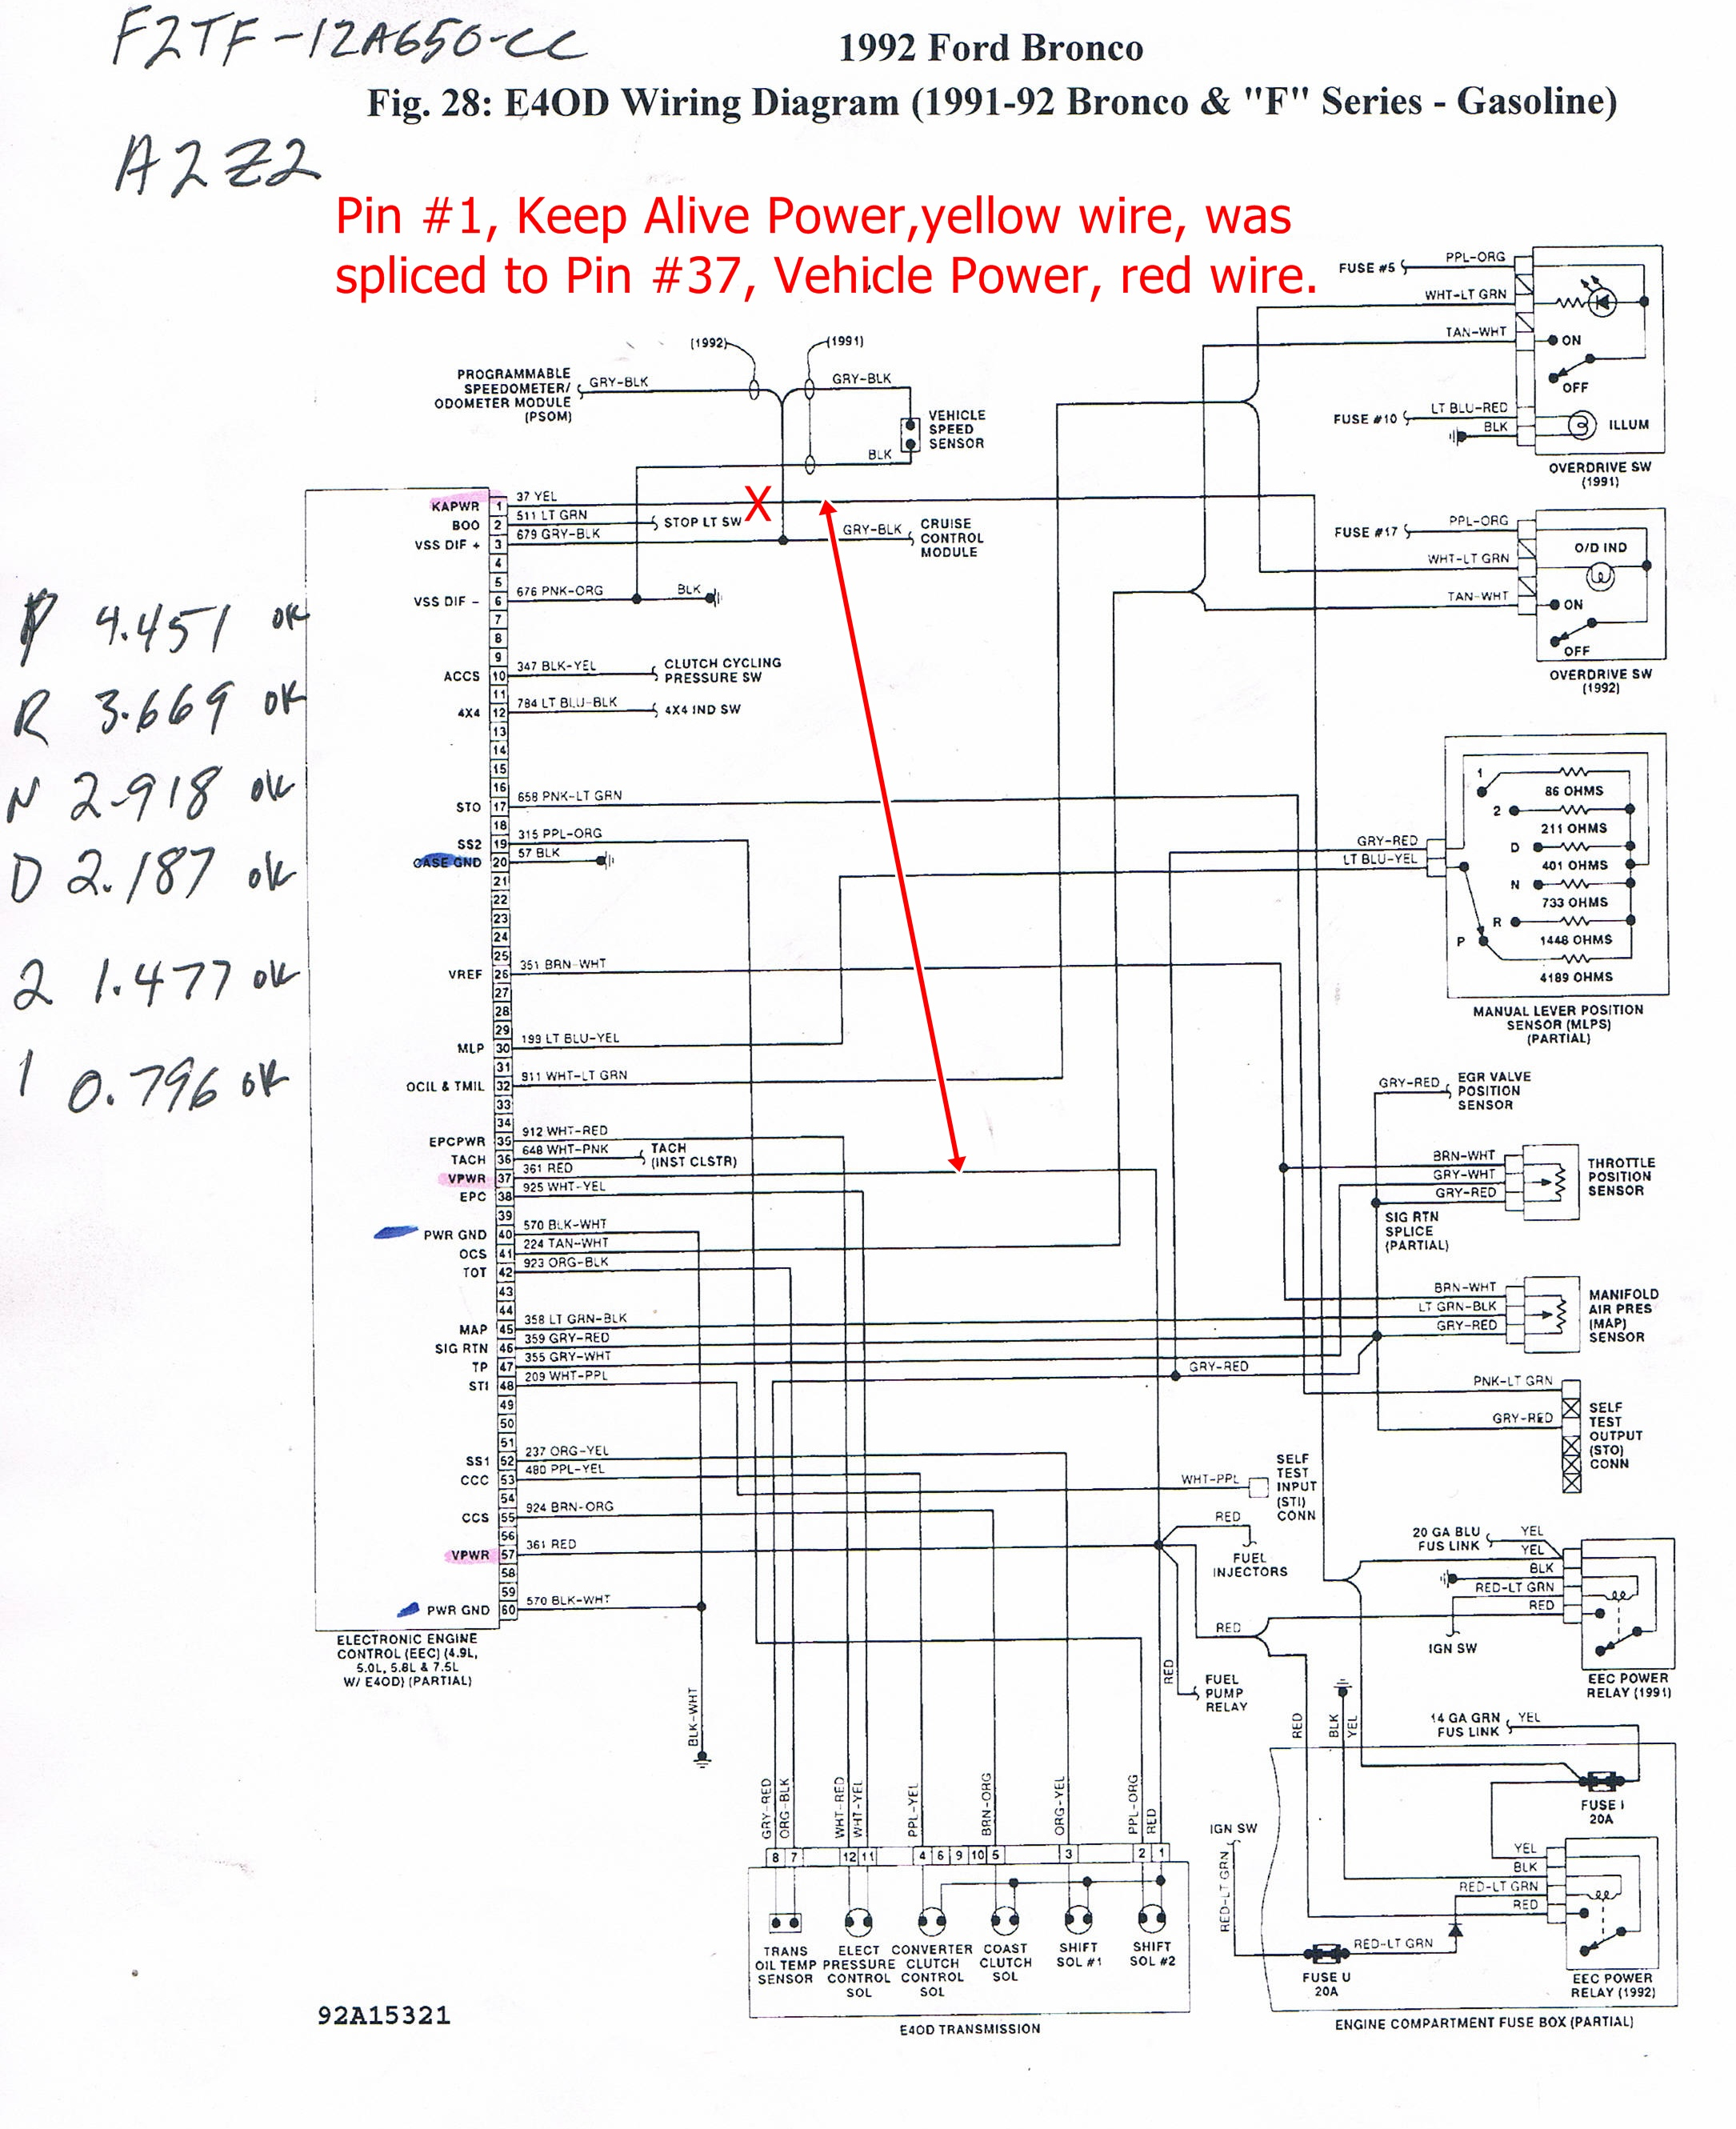 59B20A 92 Lexus Ls400 Wiring Diagram | Wiring ResourcesWiring Resources